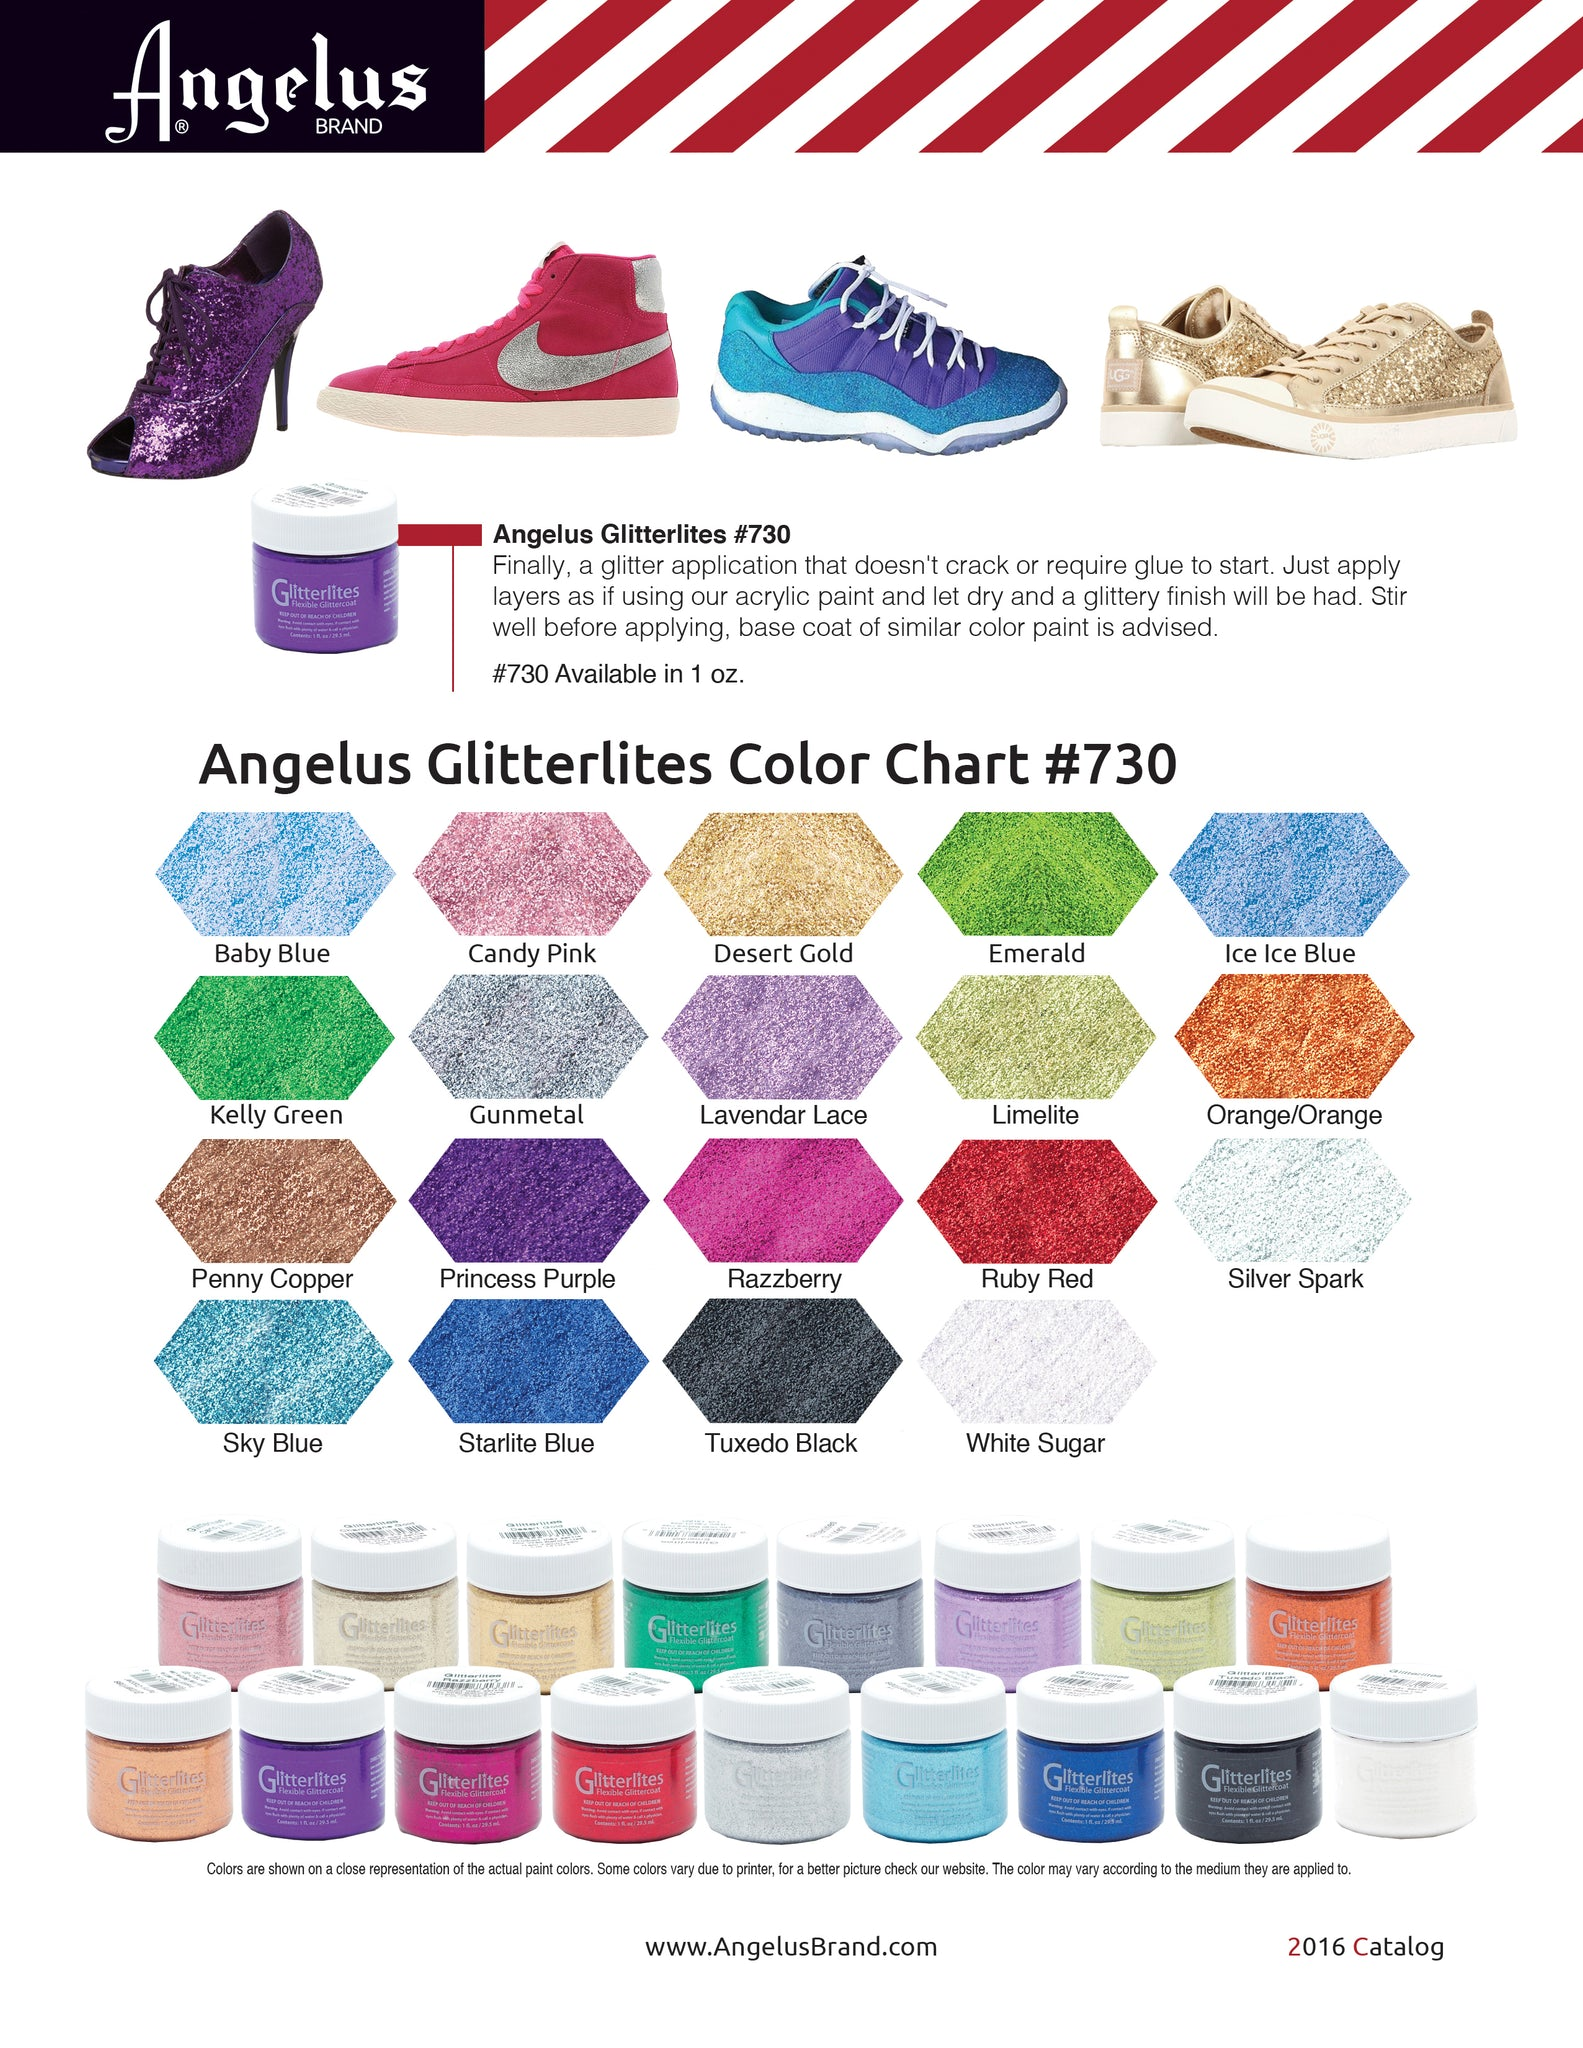 Angelus Glitterlites Paint Color Chart